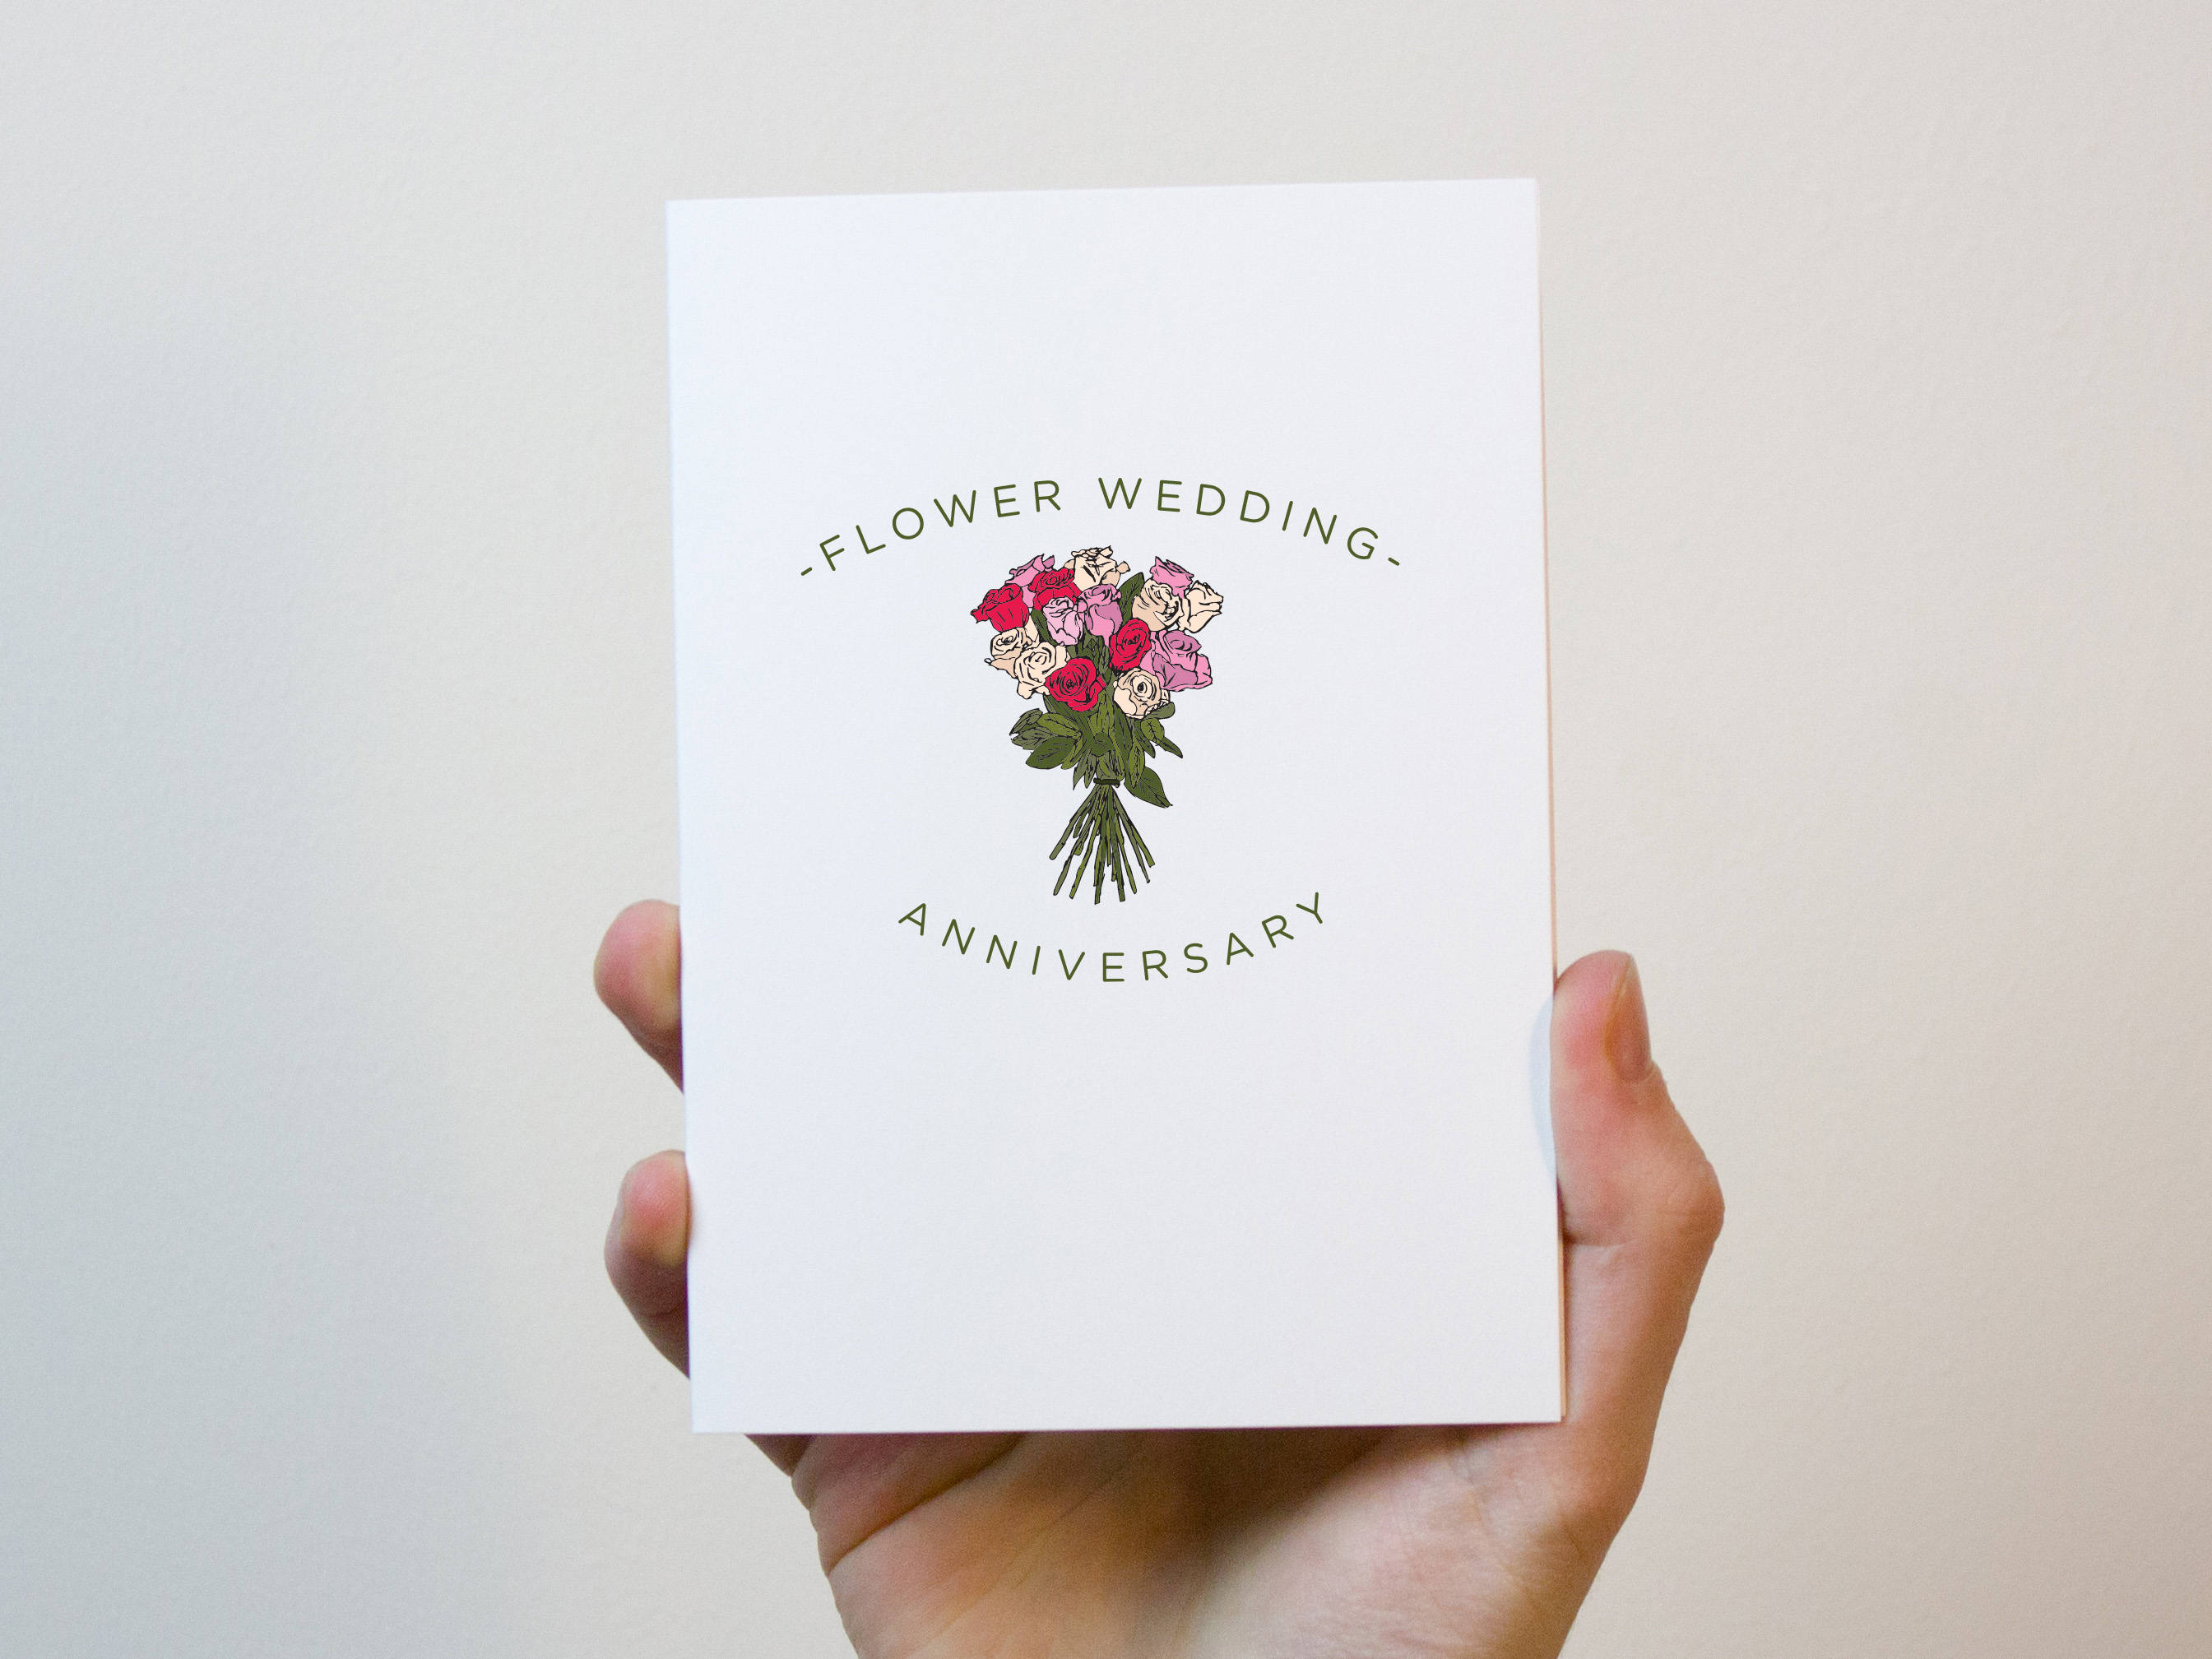 Flower Wedding Anniversary Card 4 Year Wedding Anniversary Card